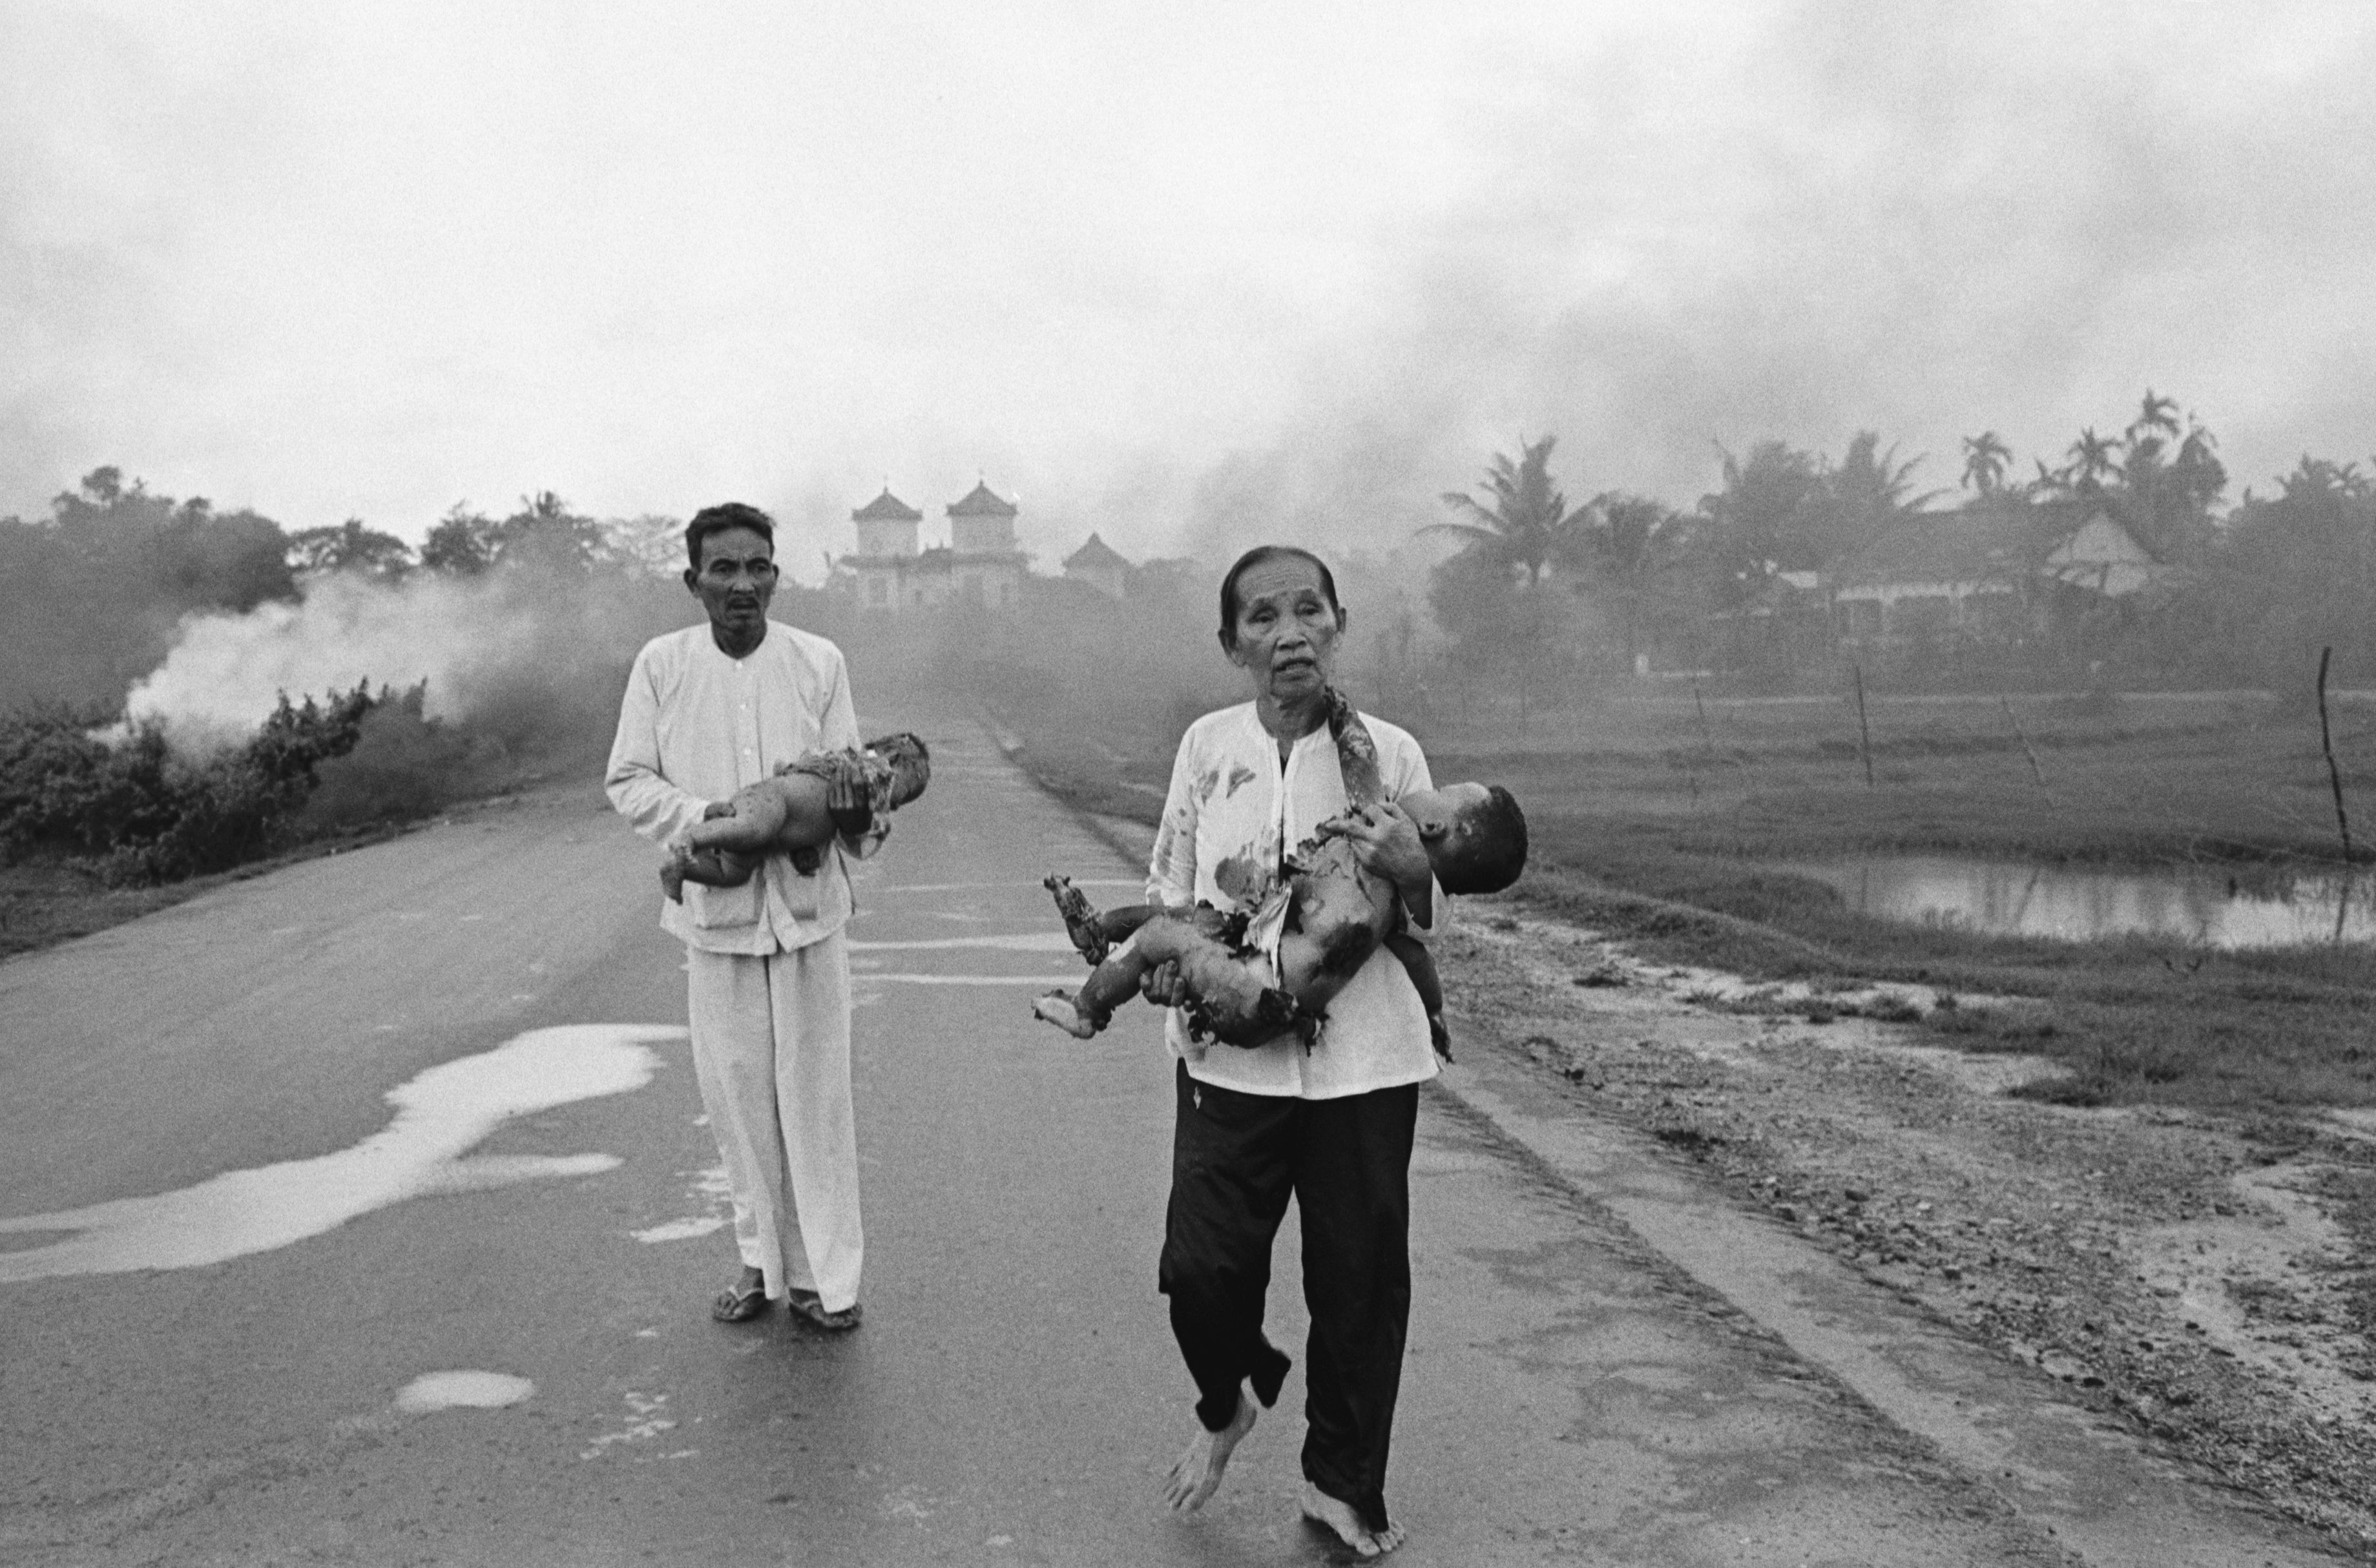 an analysis of a controversial photo take during the bombing of trang bang in 1972 The vietnam war: analyzing pulitzer prize  city bombing those and other images record the defining moments of  on june 8, 1972, a battle rages near trang bang, 25.